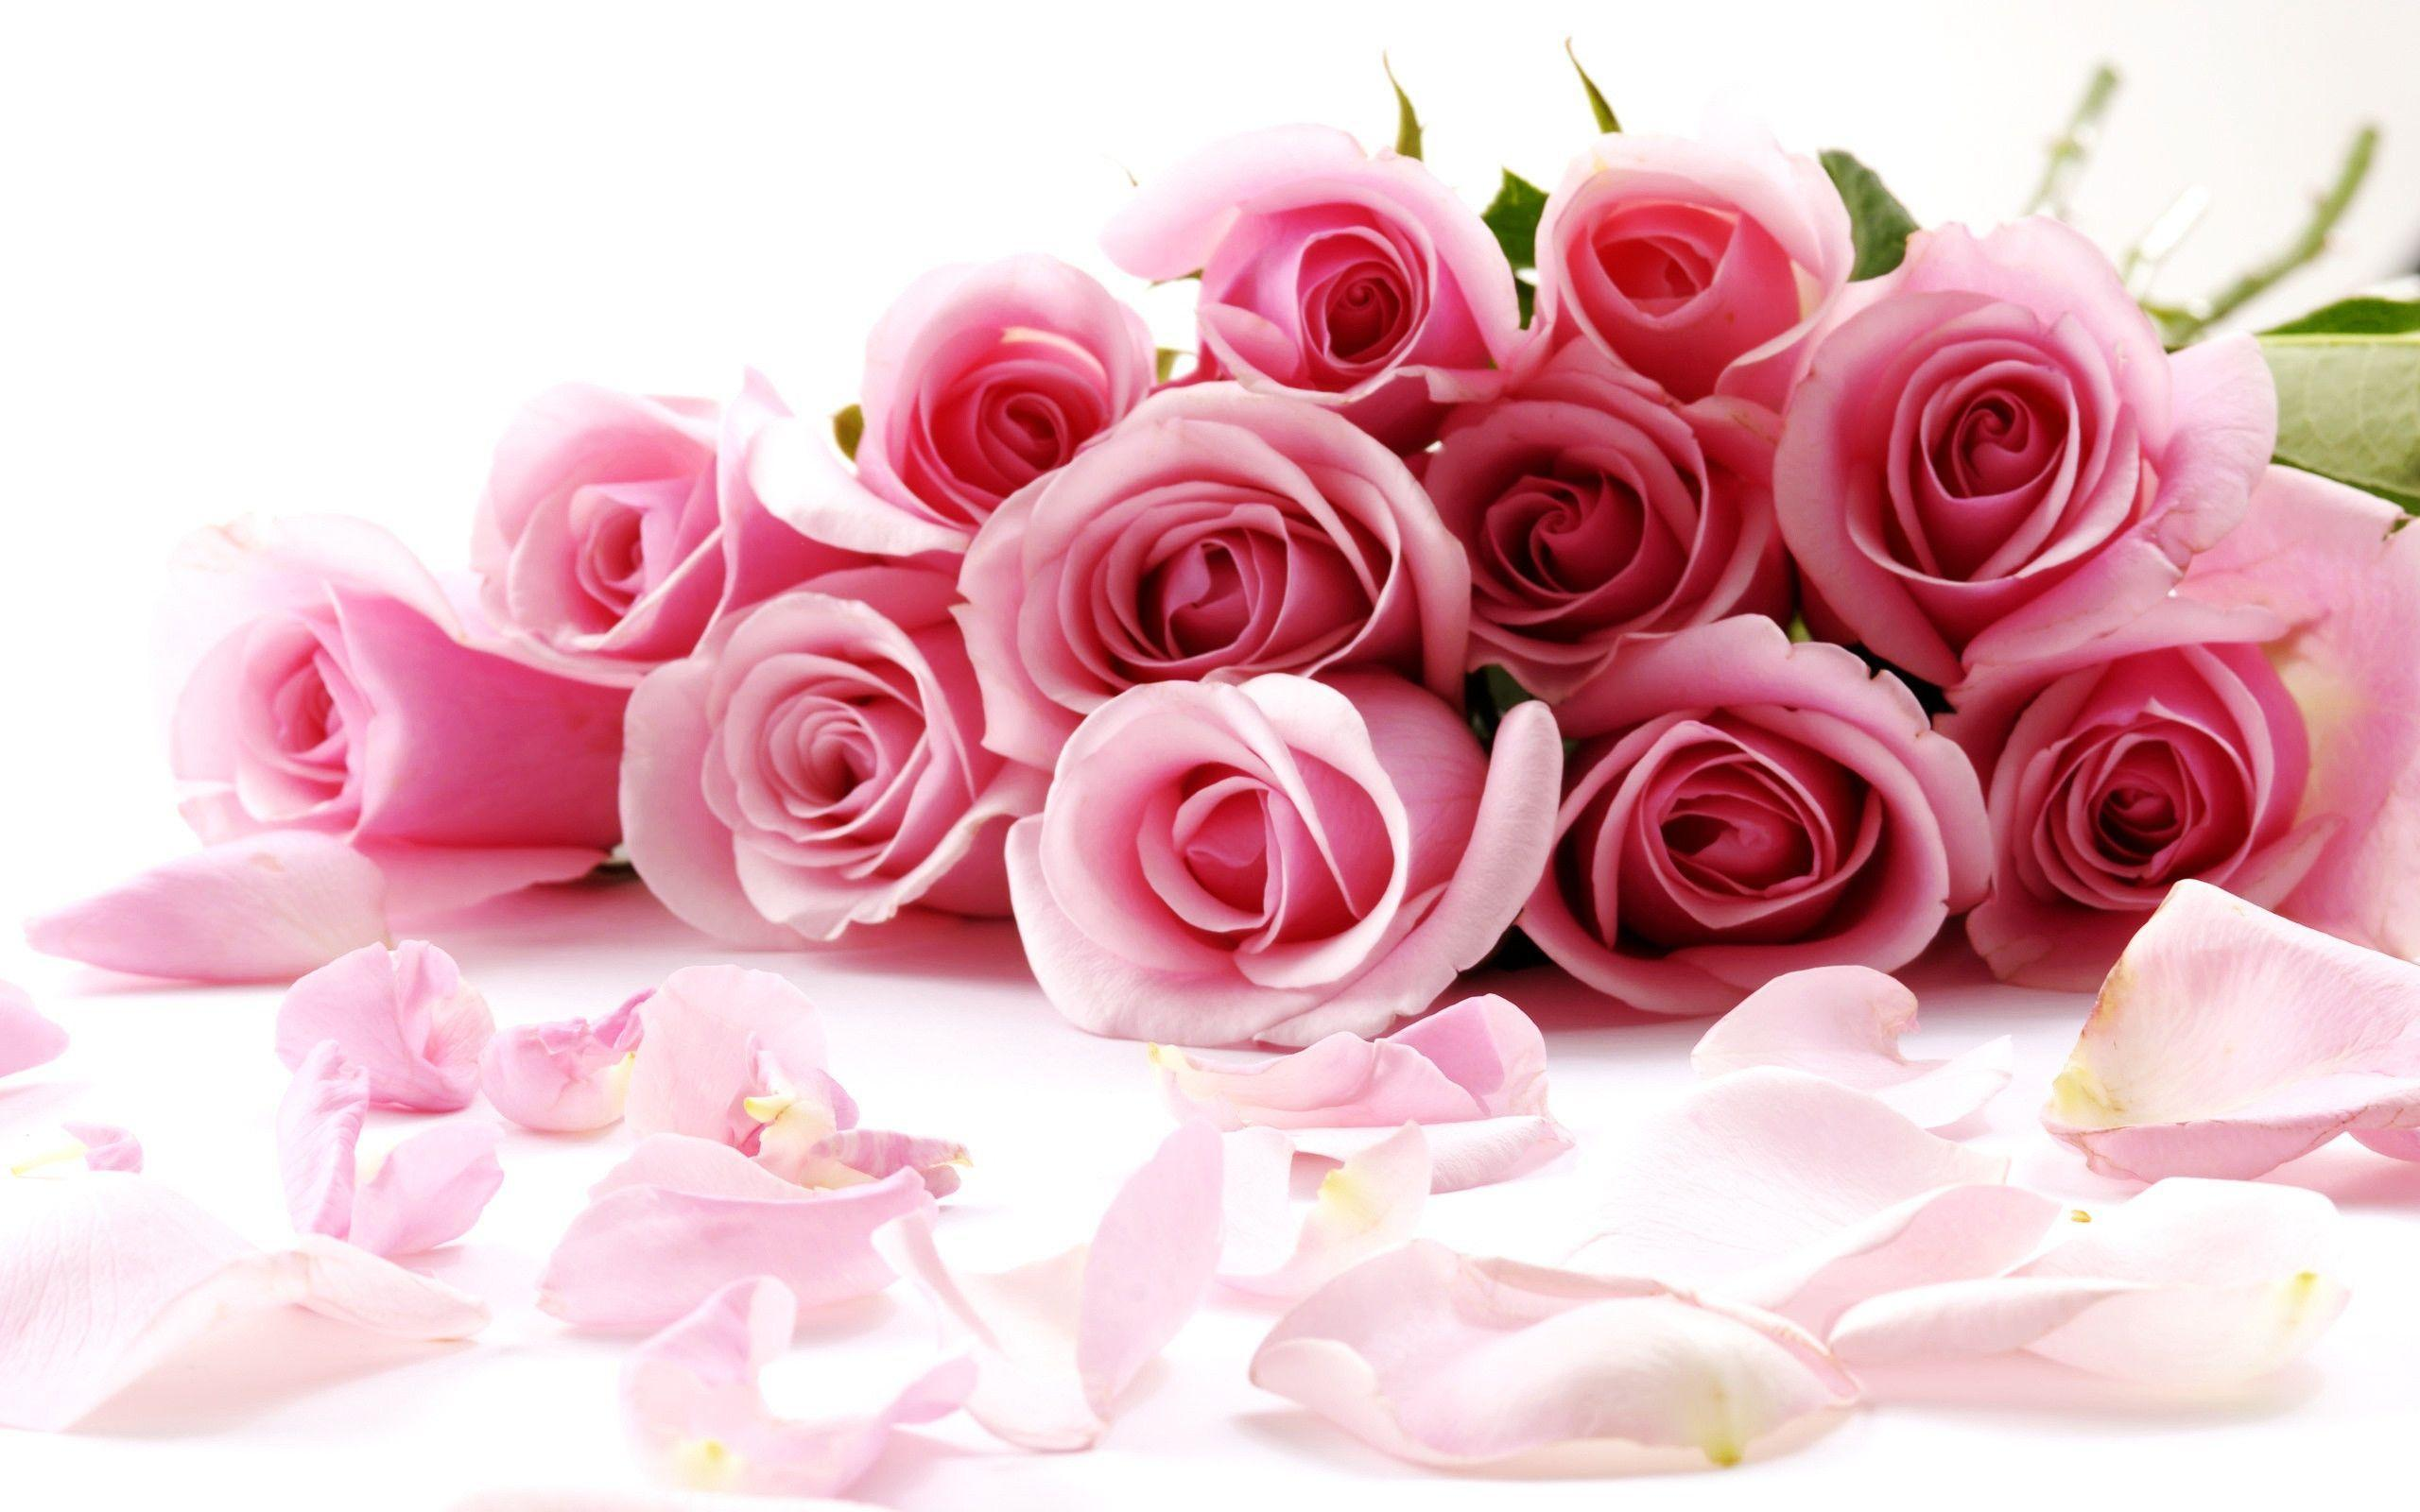 Rose flowers wallpapers wallpaper cave rose flower wallpapers full hd wallpaper search mightylinksfo